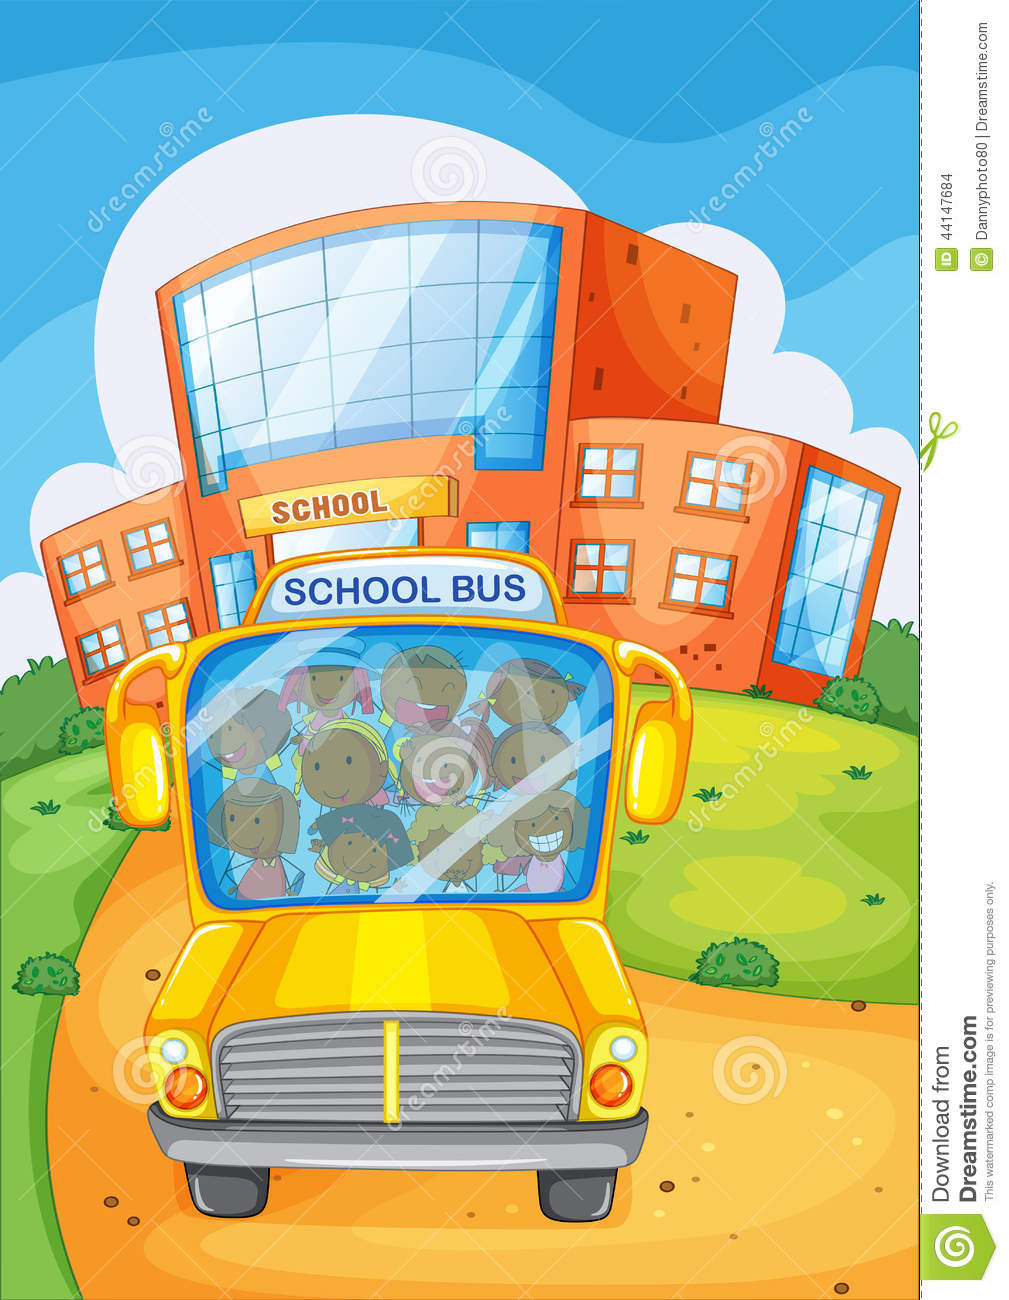 School Bus Stock Vector - Image: 44147684